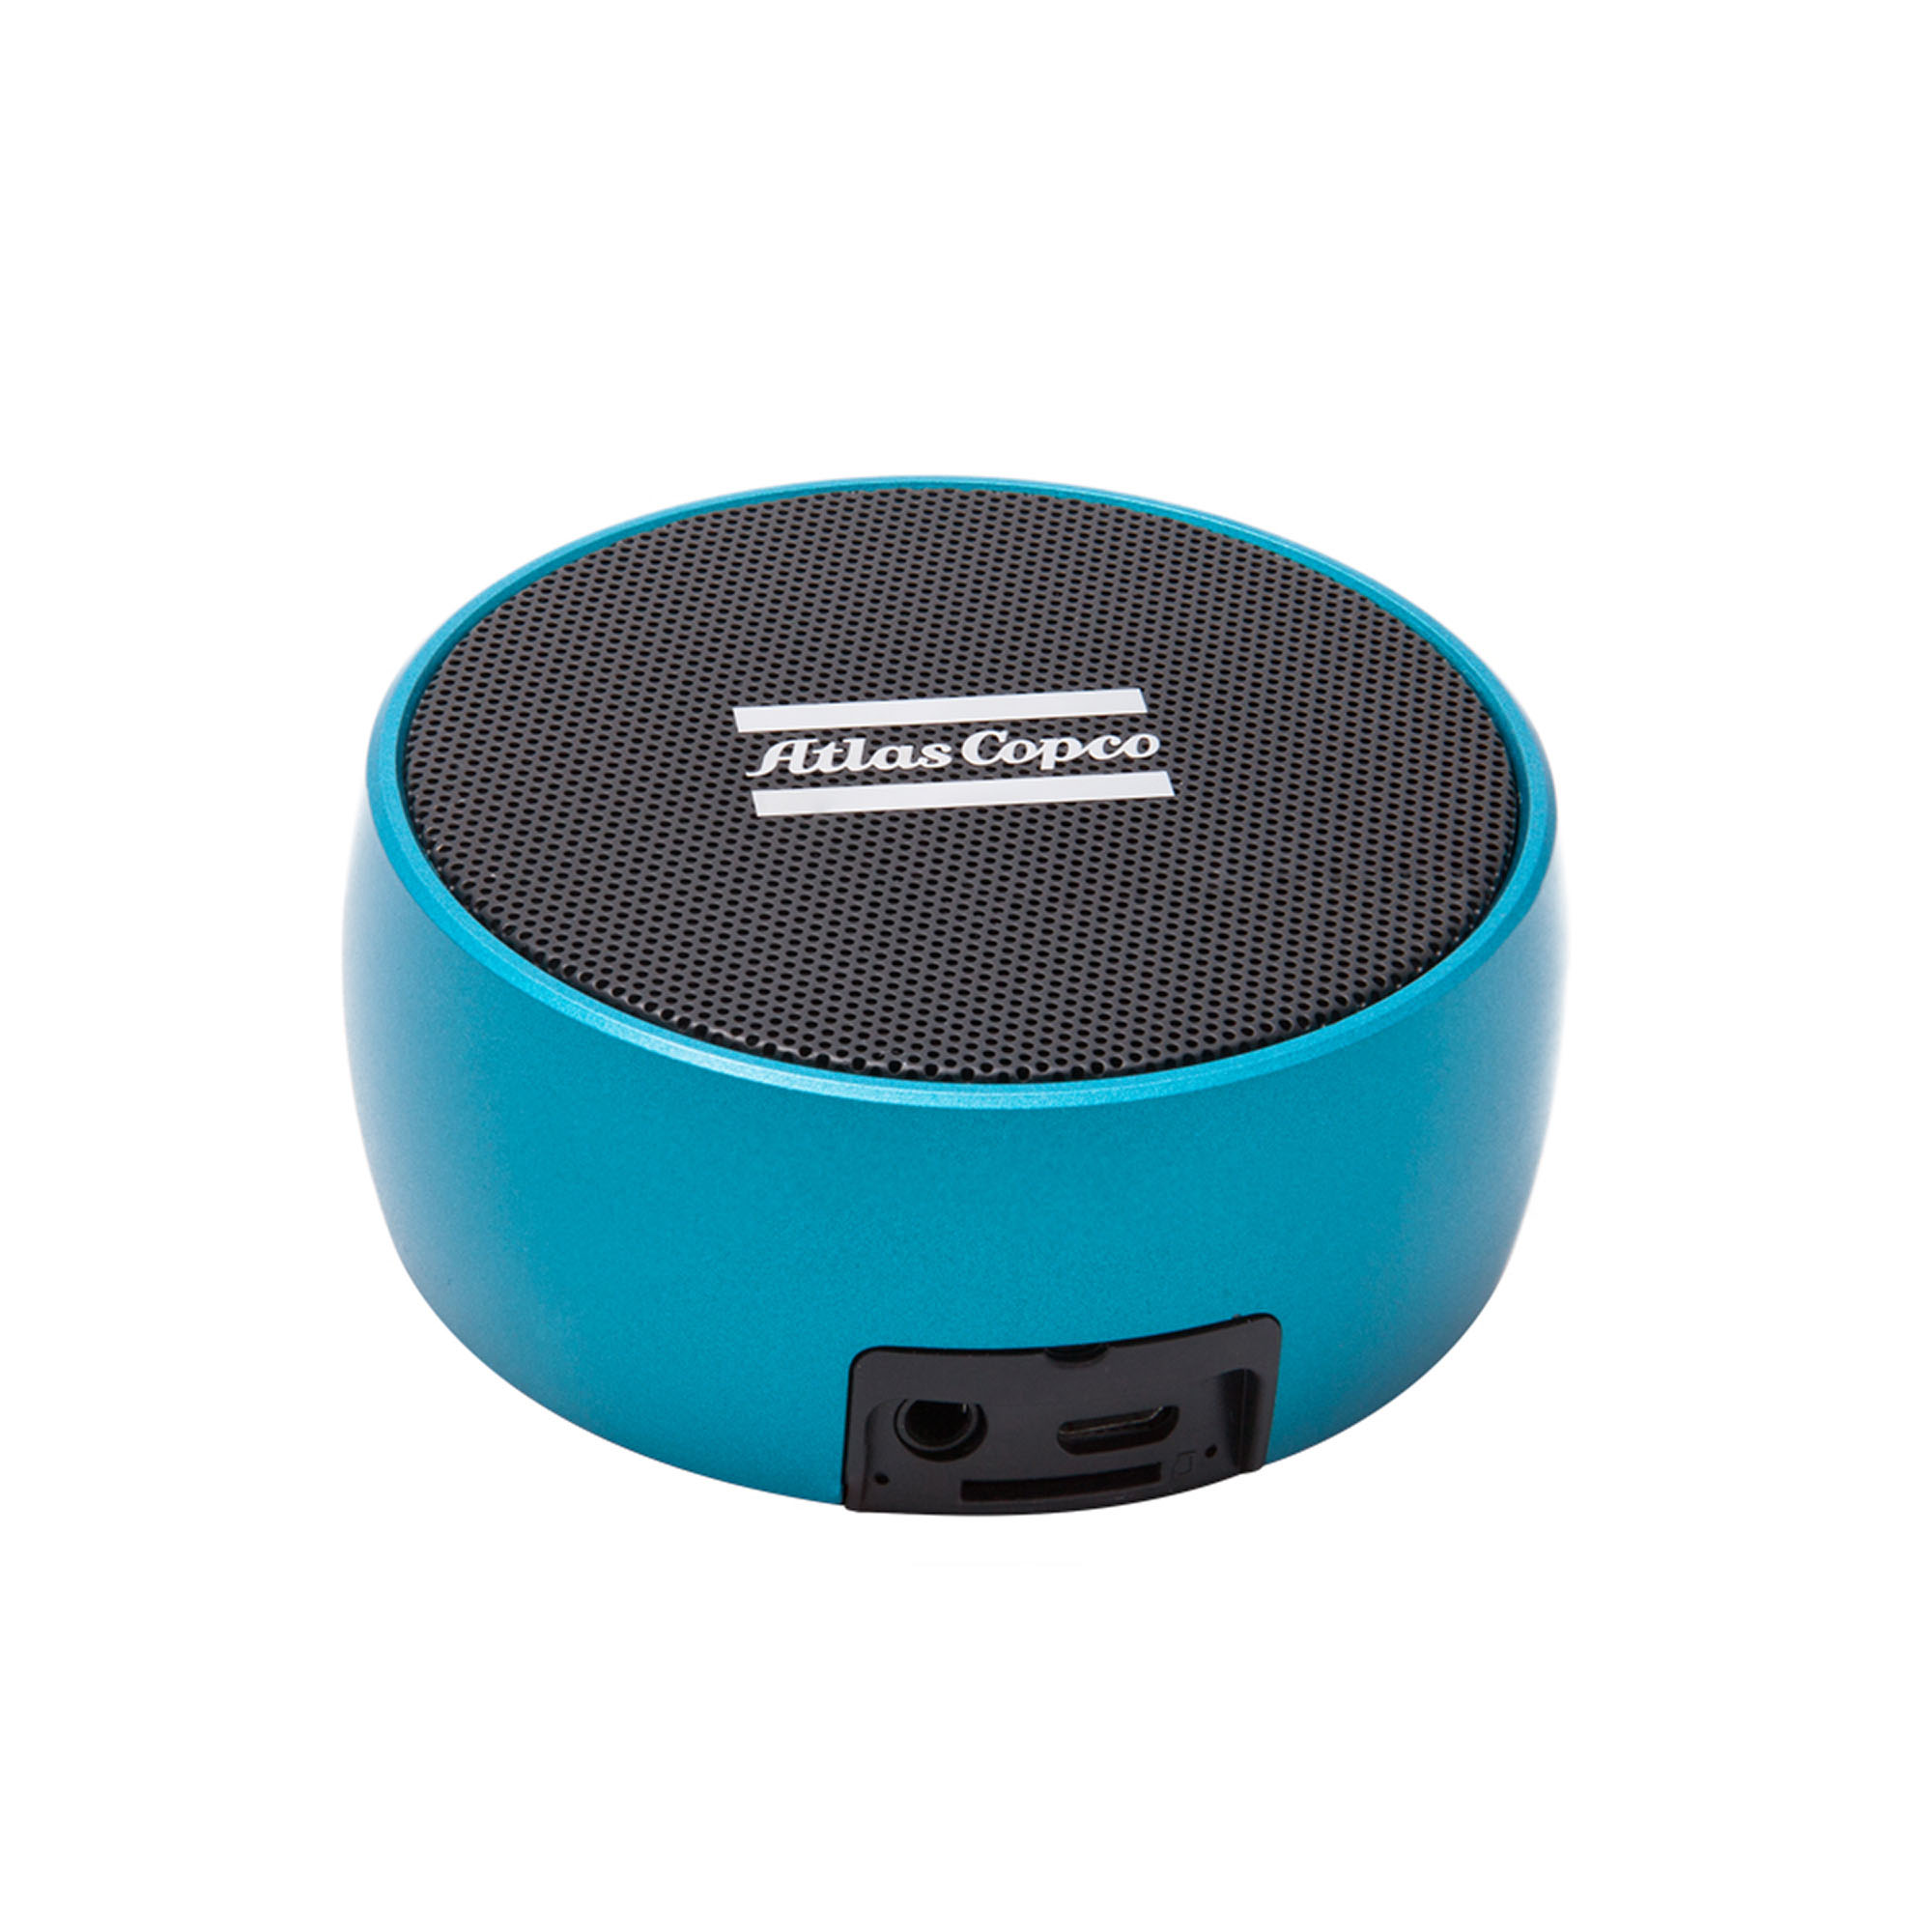 A high quality Bluetooth speaker made in metal. Rechargeable battery and an AUX-port for connecting devices without Bluetooth support. The built in mic allows the speaker to handle your calls as well as your music. Frequency response: 100HZ~15KHZ Output: 3W Built-in Lithum battery: 3.7V/ 600mAh.